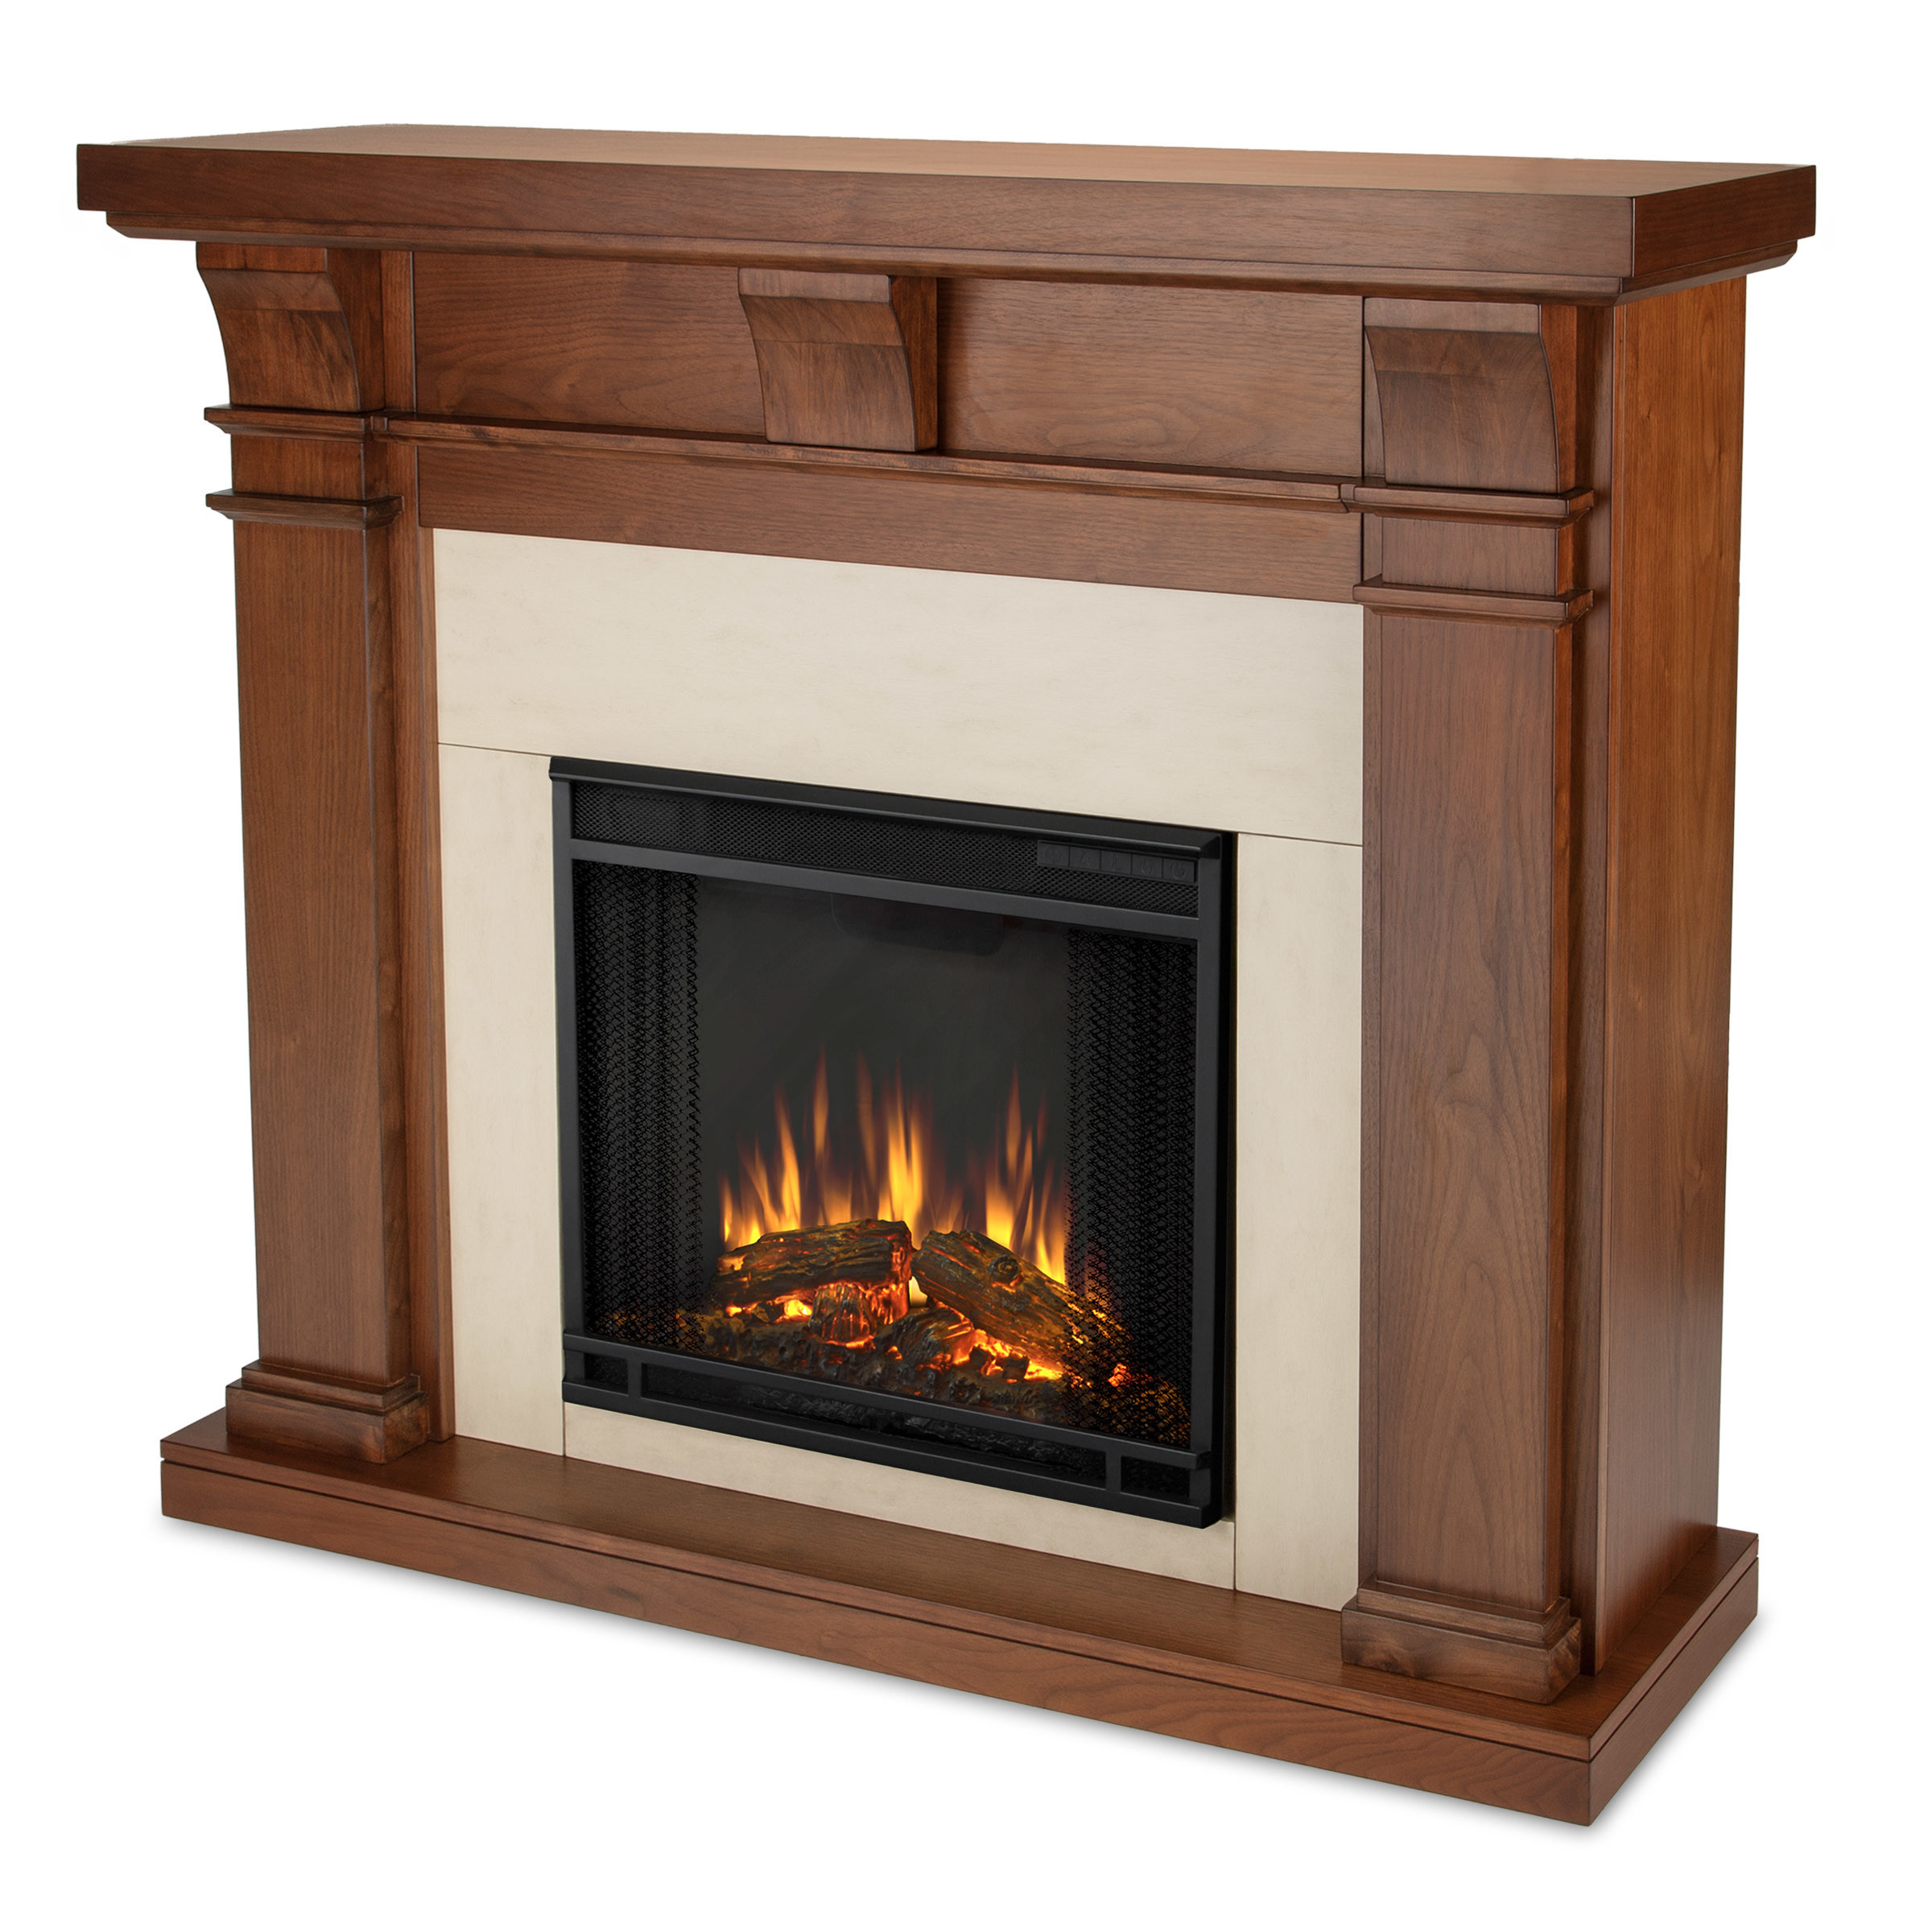 Best ideas about Real Flame Fireplace . Save or Pin Real Flame Porter Electric Fireplace & Reviews Now.